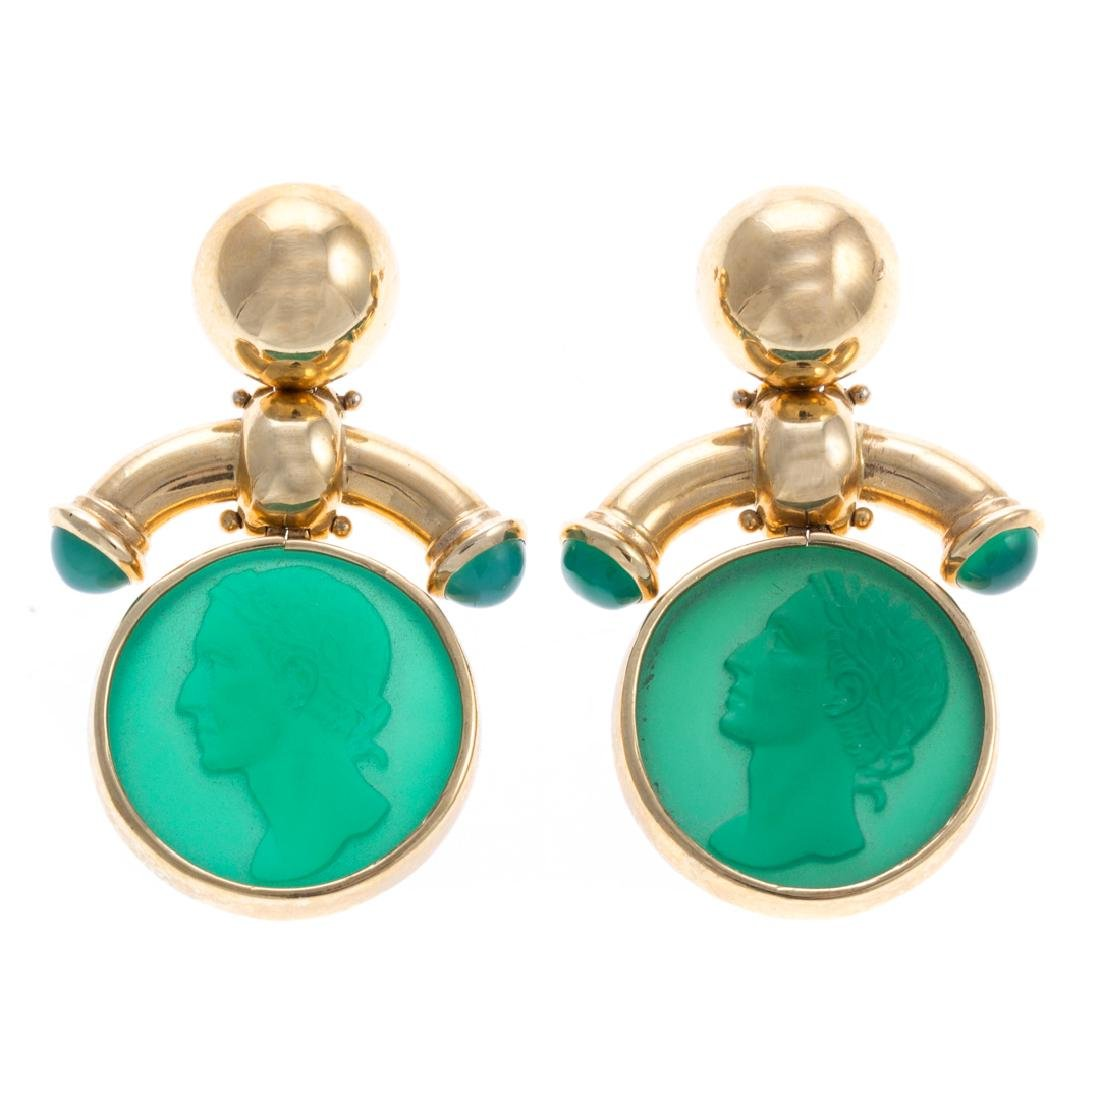 A Pair of 18K Green Intaglio Earrings